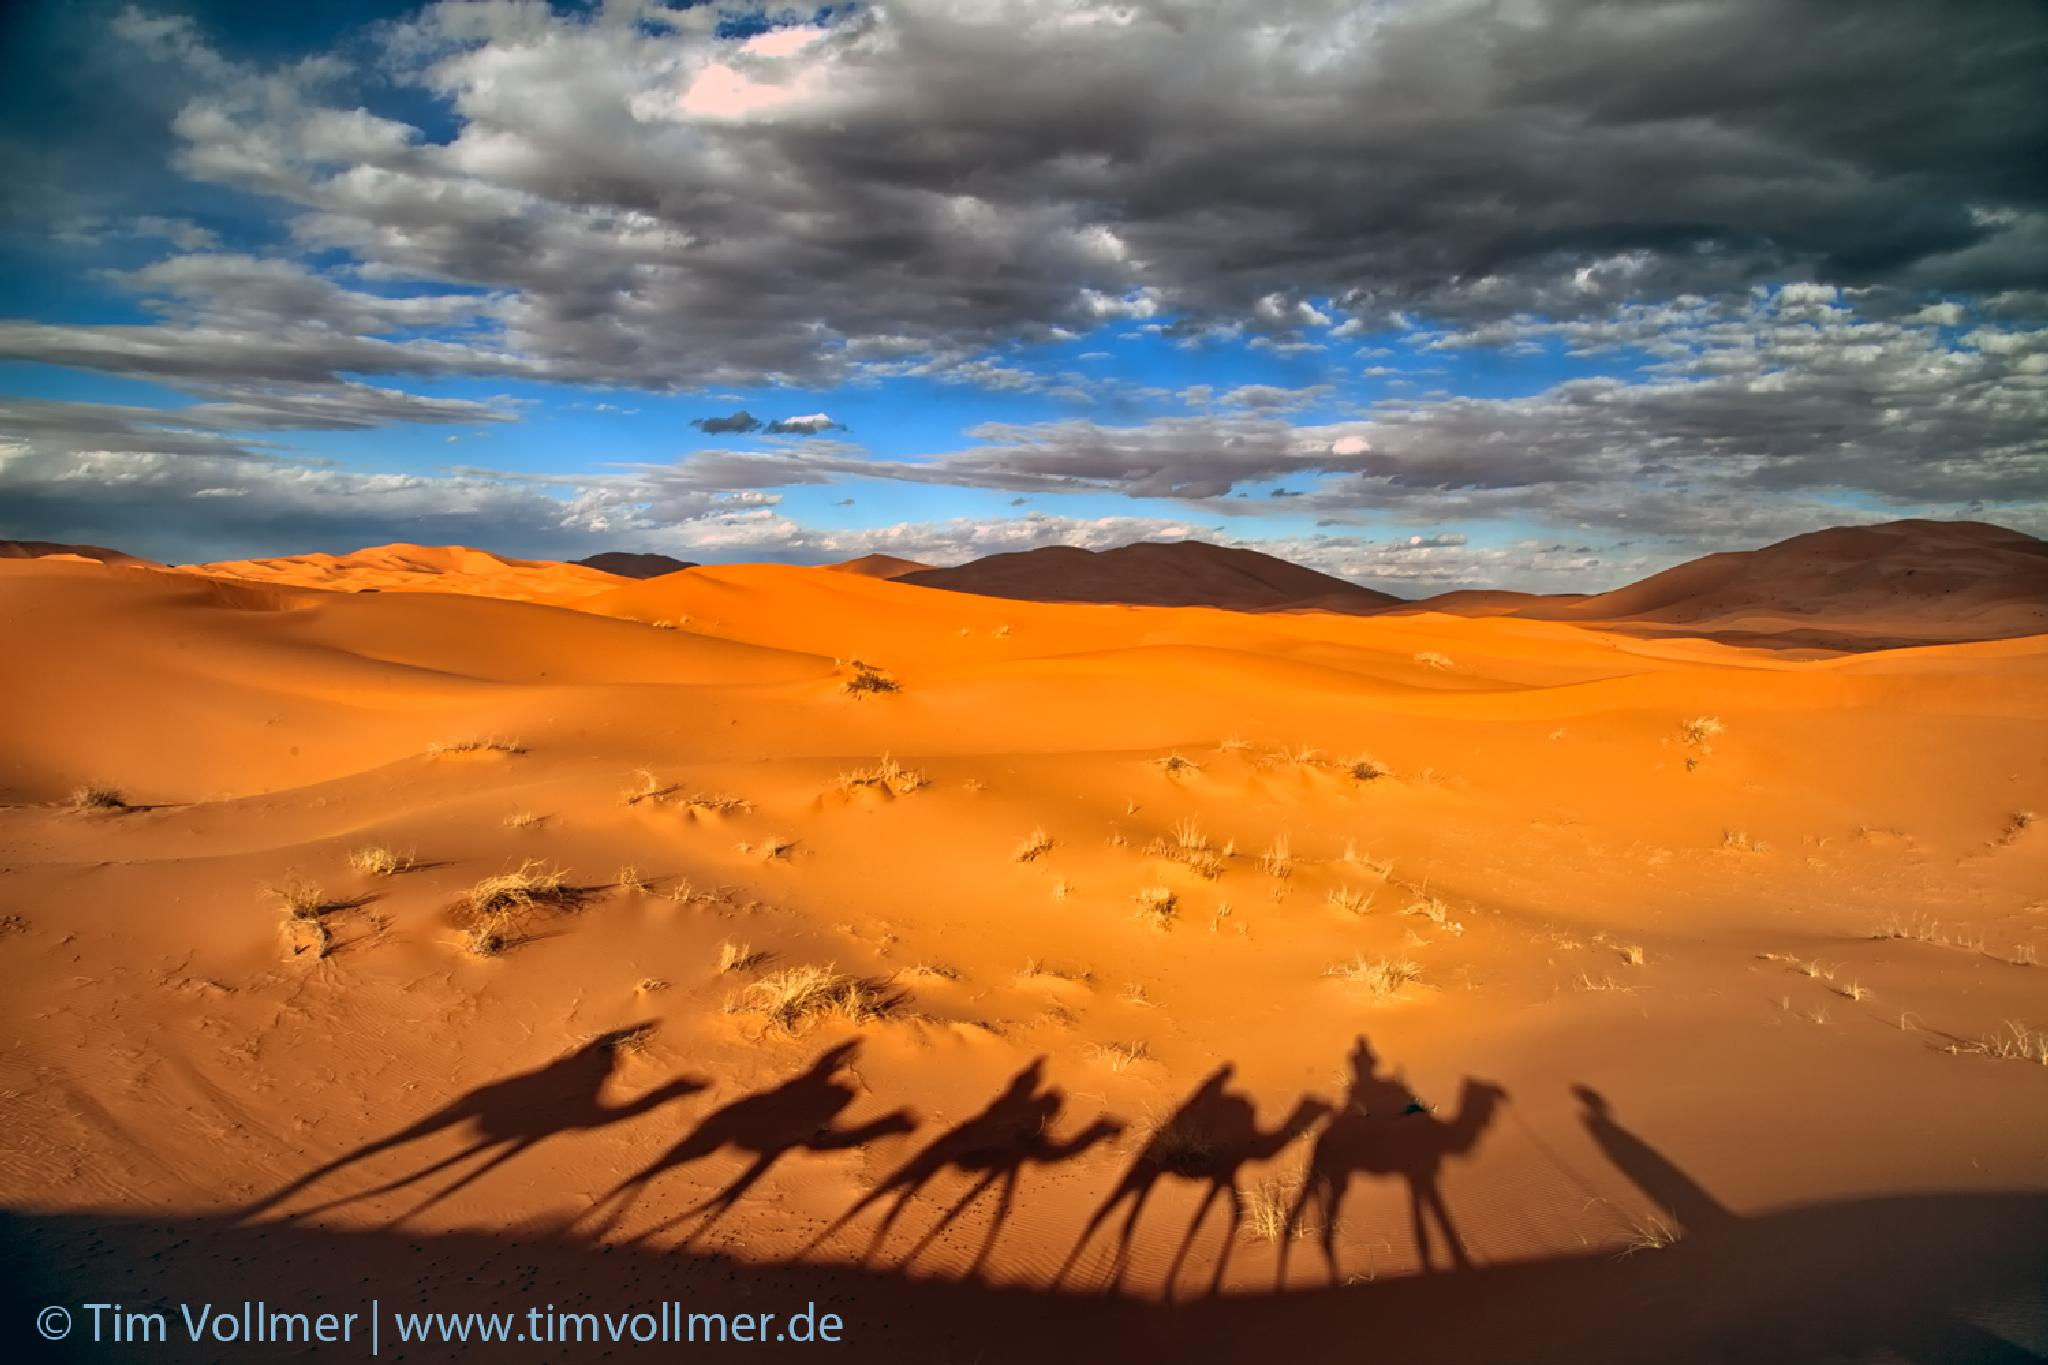 Camel riding by TimVollmerPhotography